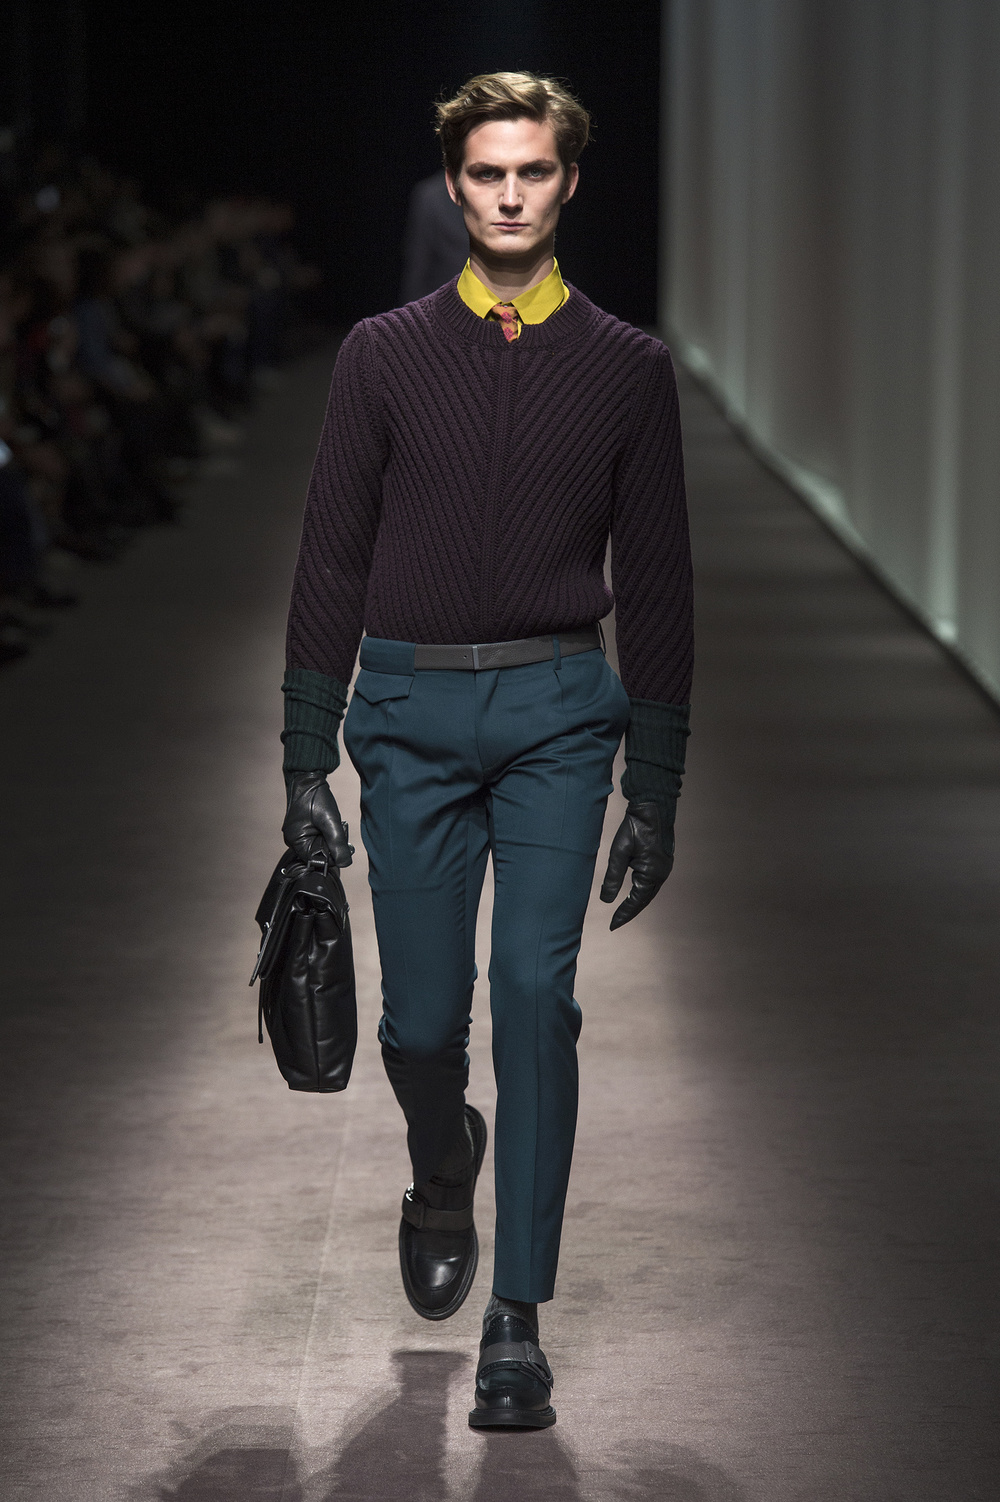 Canali Men's FW16 at Milan Fashion Week